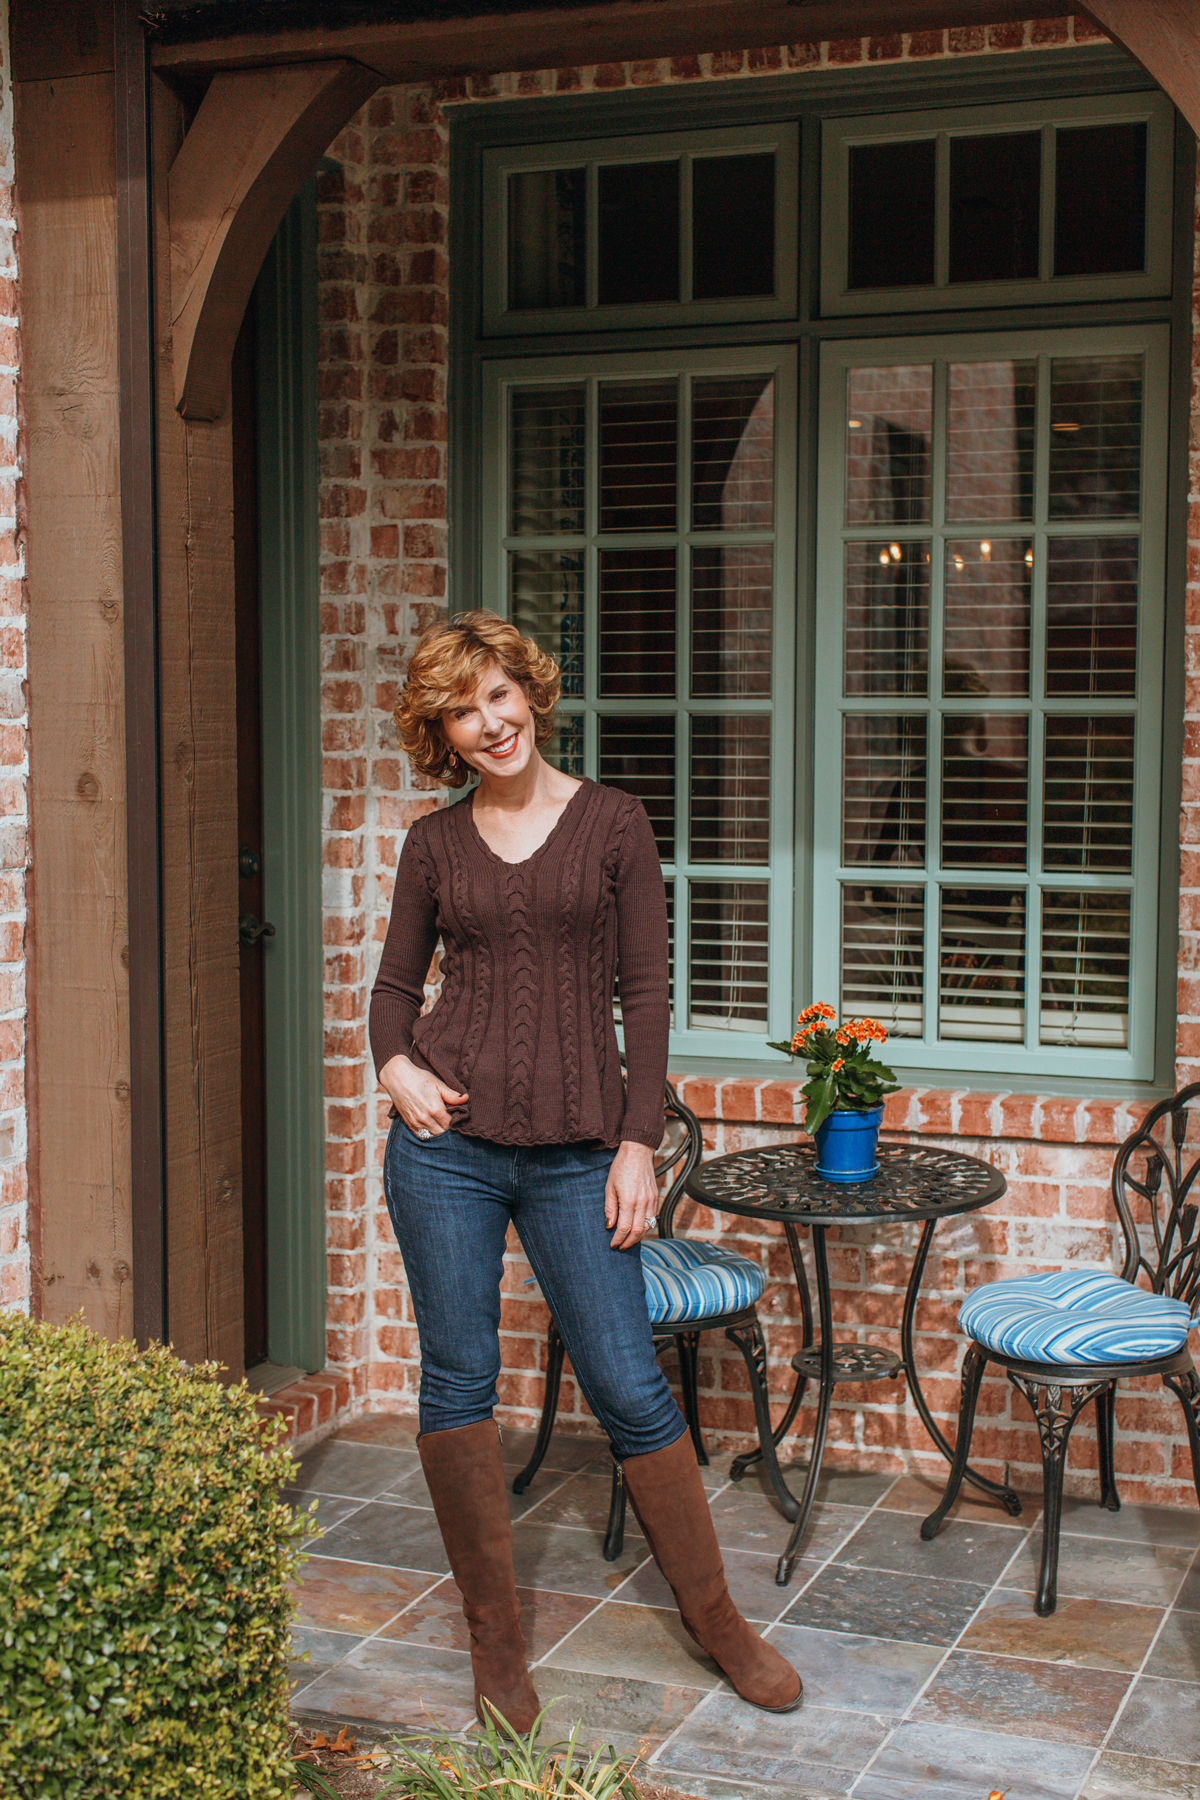 over 50 woman in brown sweater blue jeans and brown boots standing on a porch with a table and chairs in the background